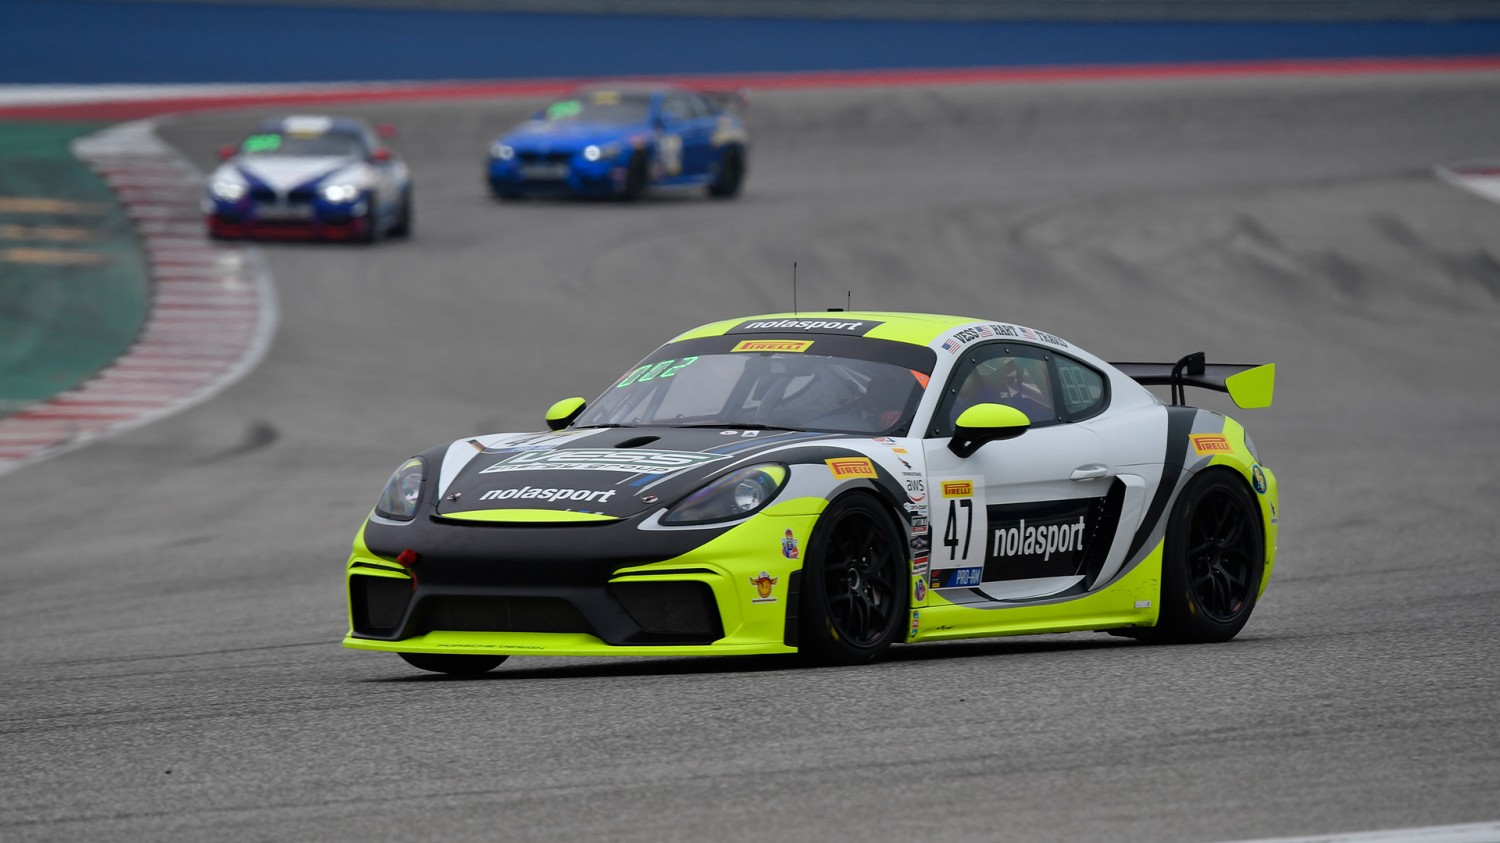 Forty-four Entries Featured Across GT4 Sprint,SprintX at VIR